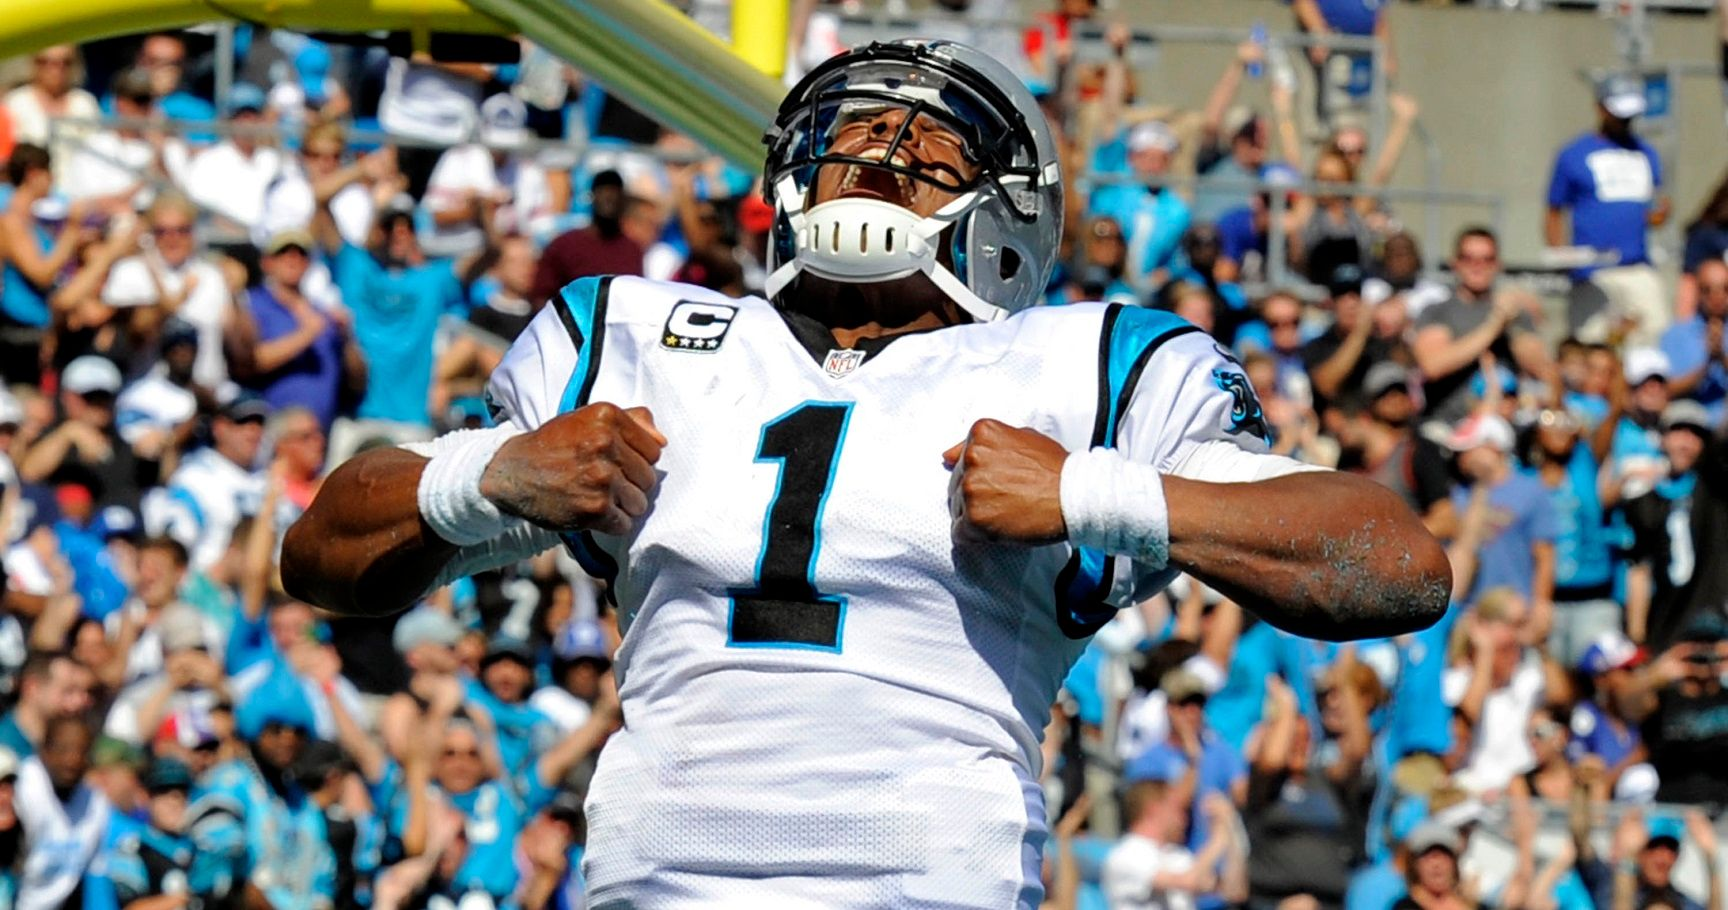 Cam Newton: 10 Things You Don't Know About The NFL's Superman